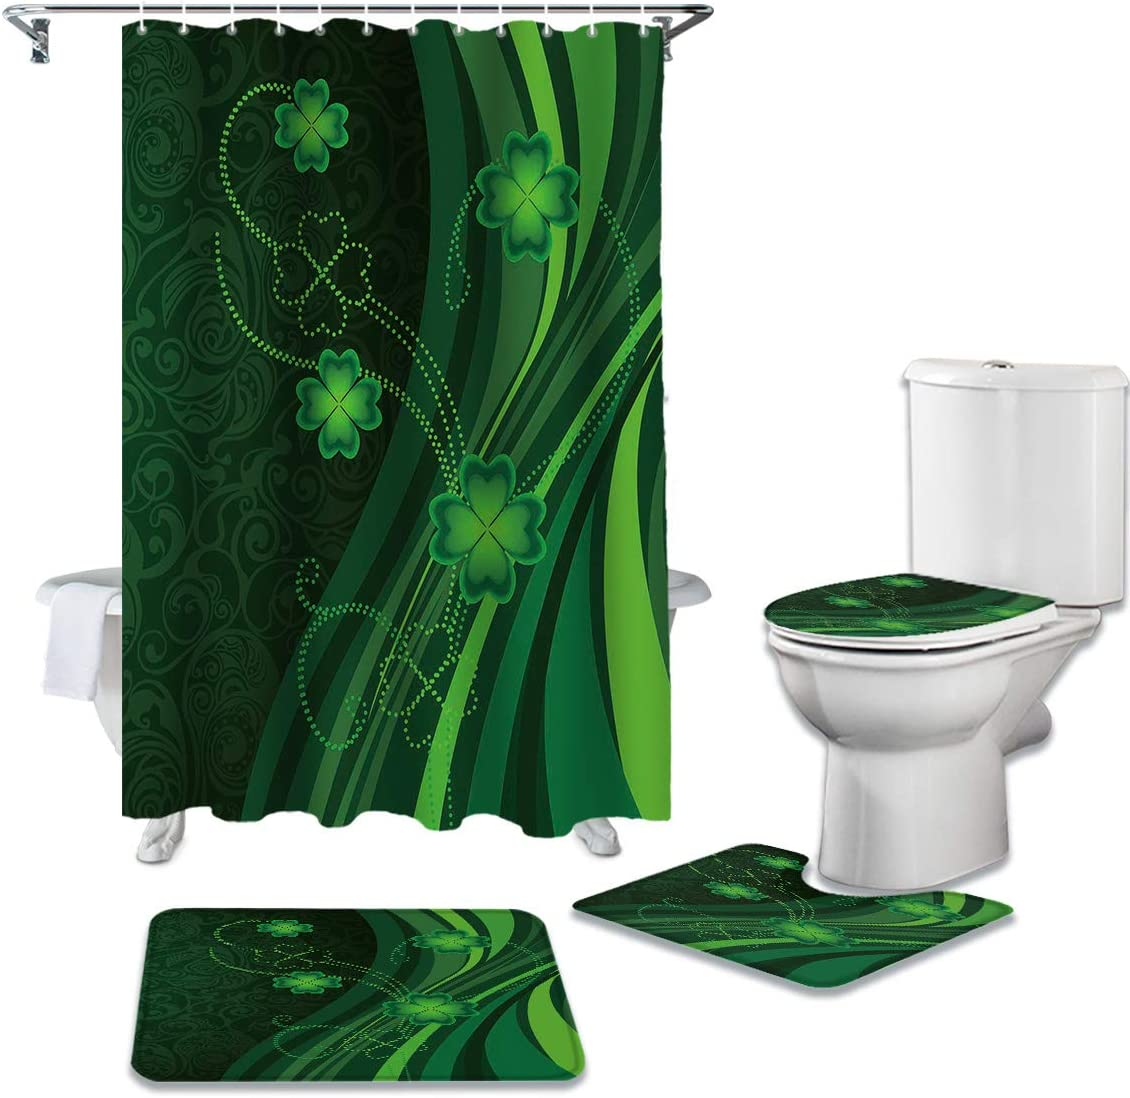 CHARMHOME Long-awaited 4 Piece Shower Curtain Cheap SALE Start with Non-Slip Rug Toilet Sets